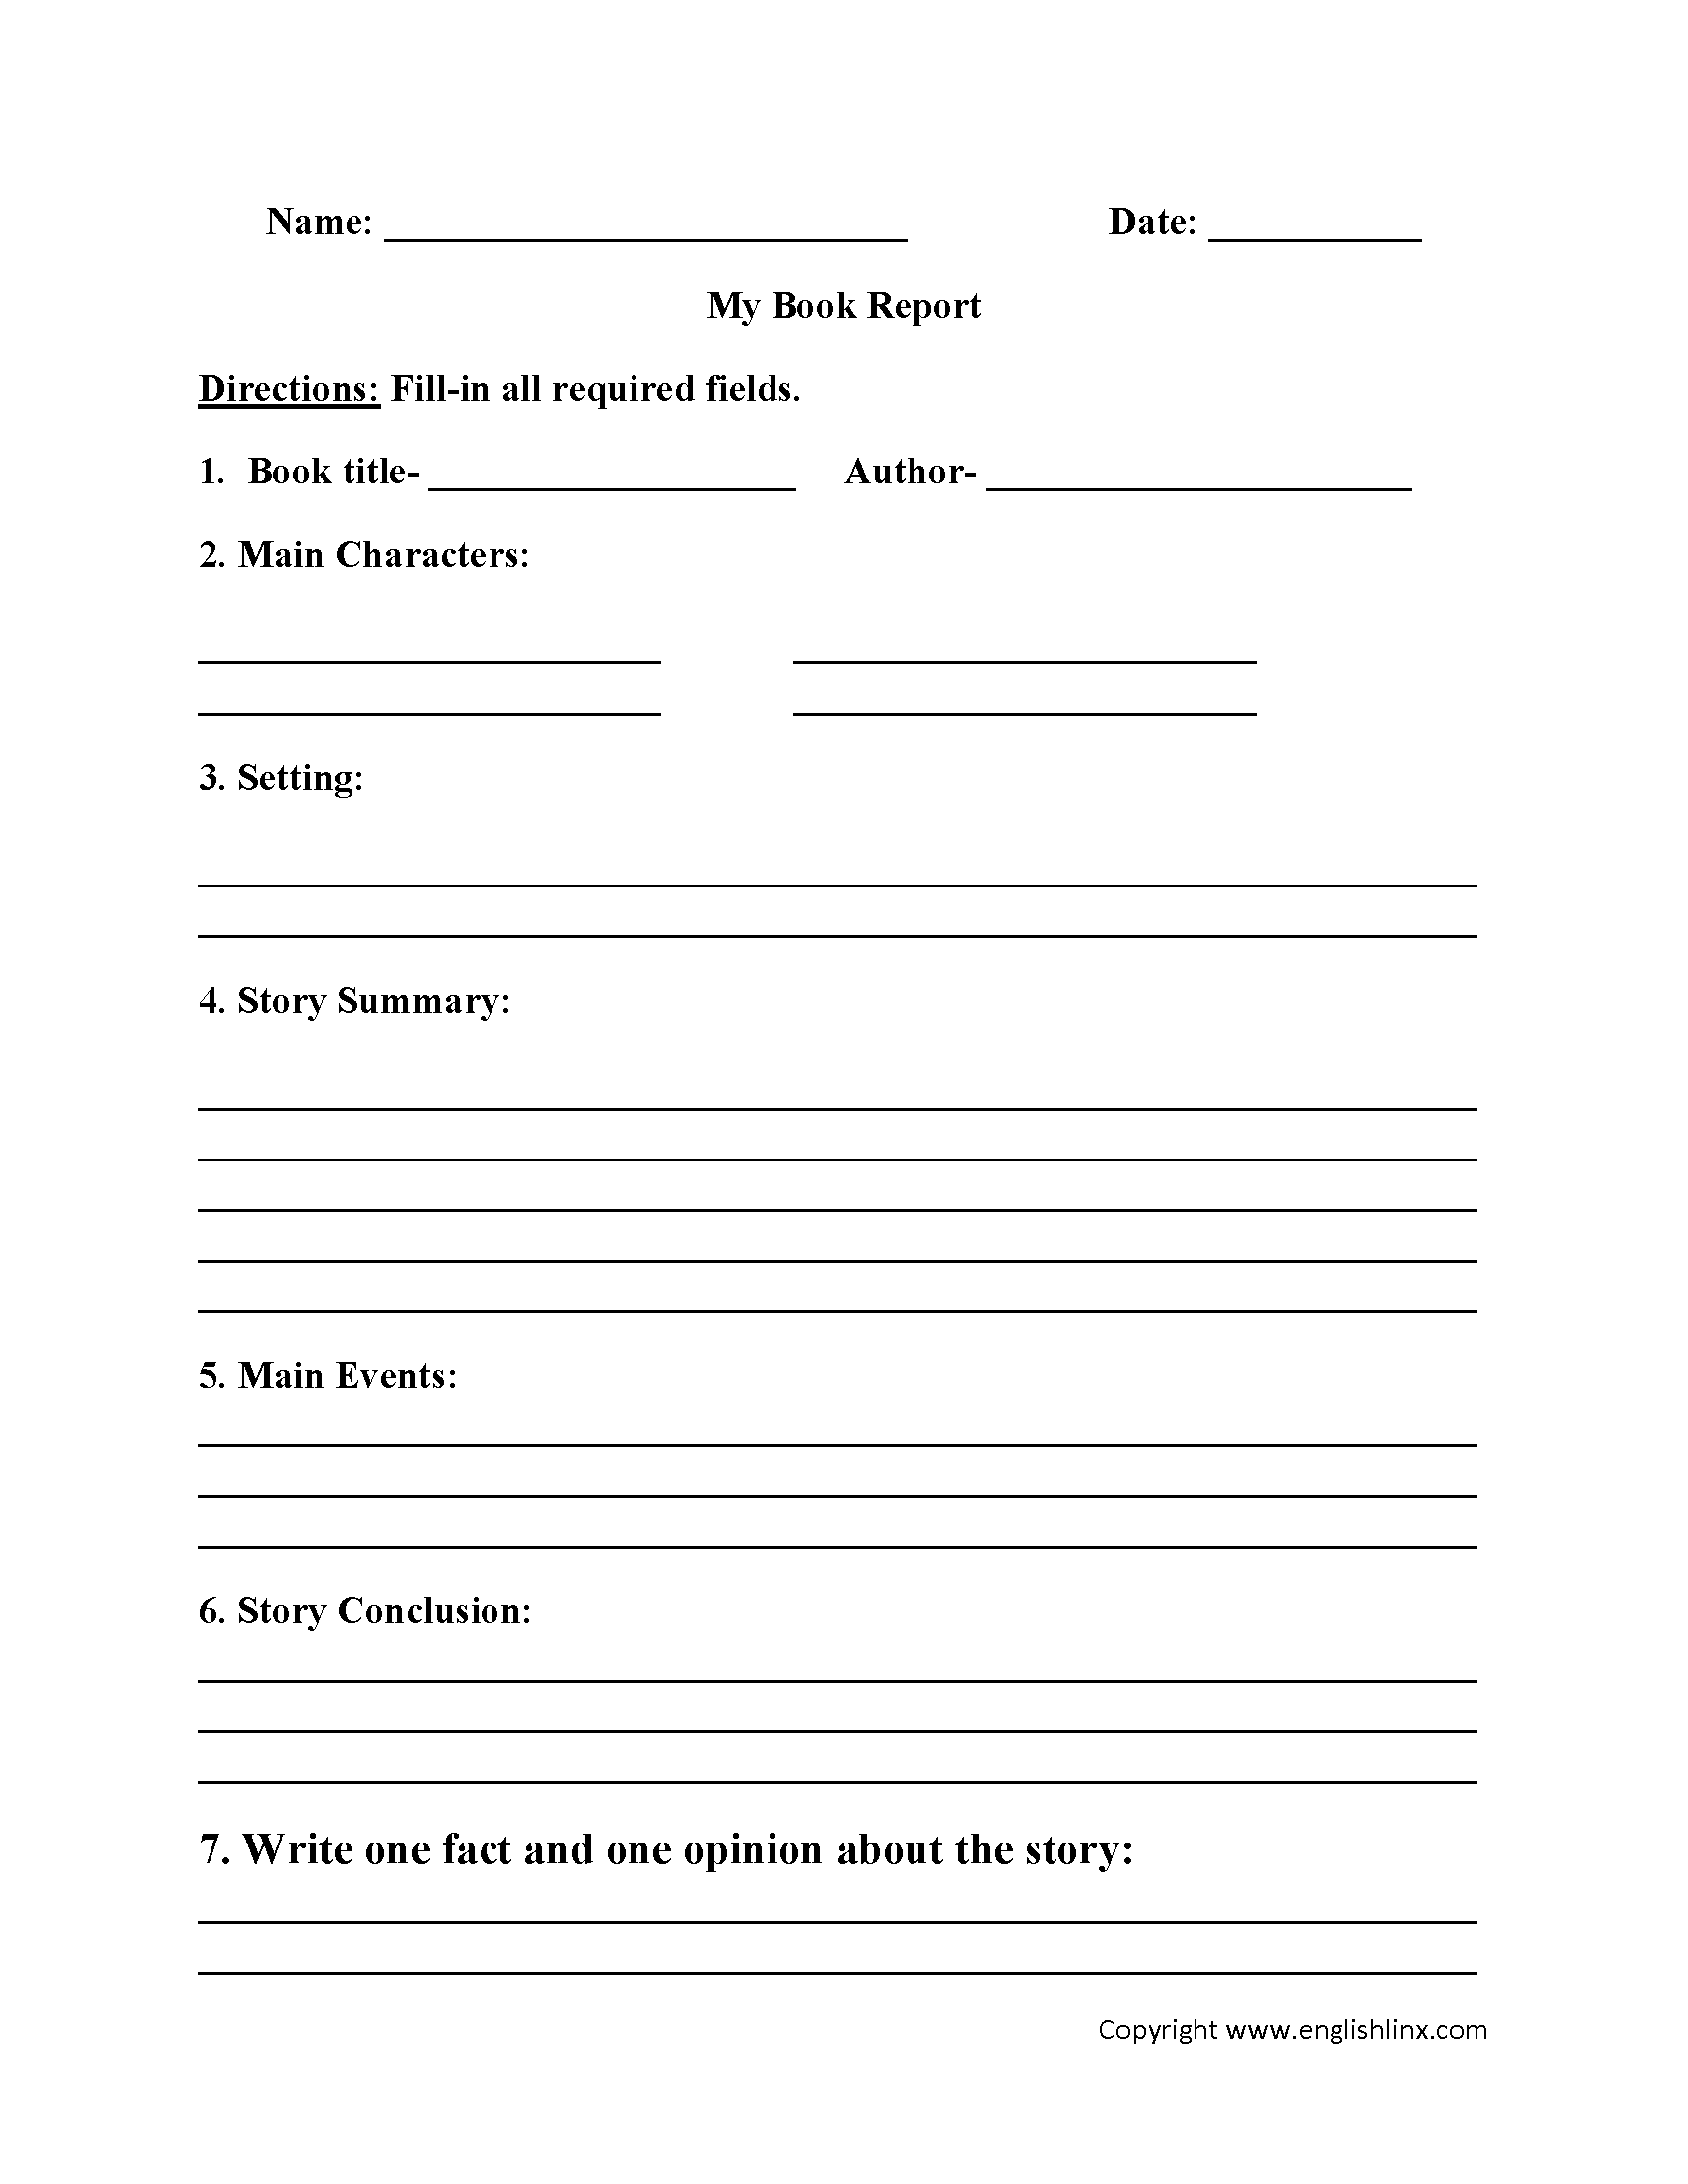 com book report worksheets book report worksheet